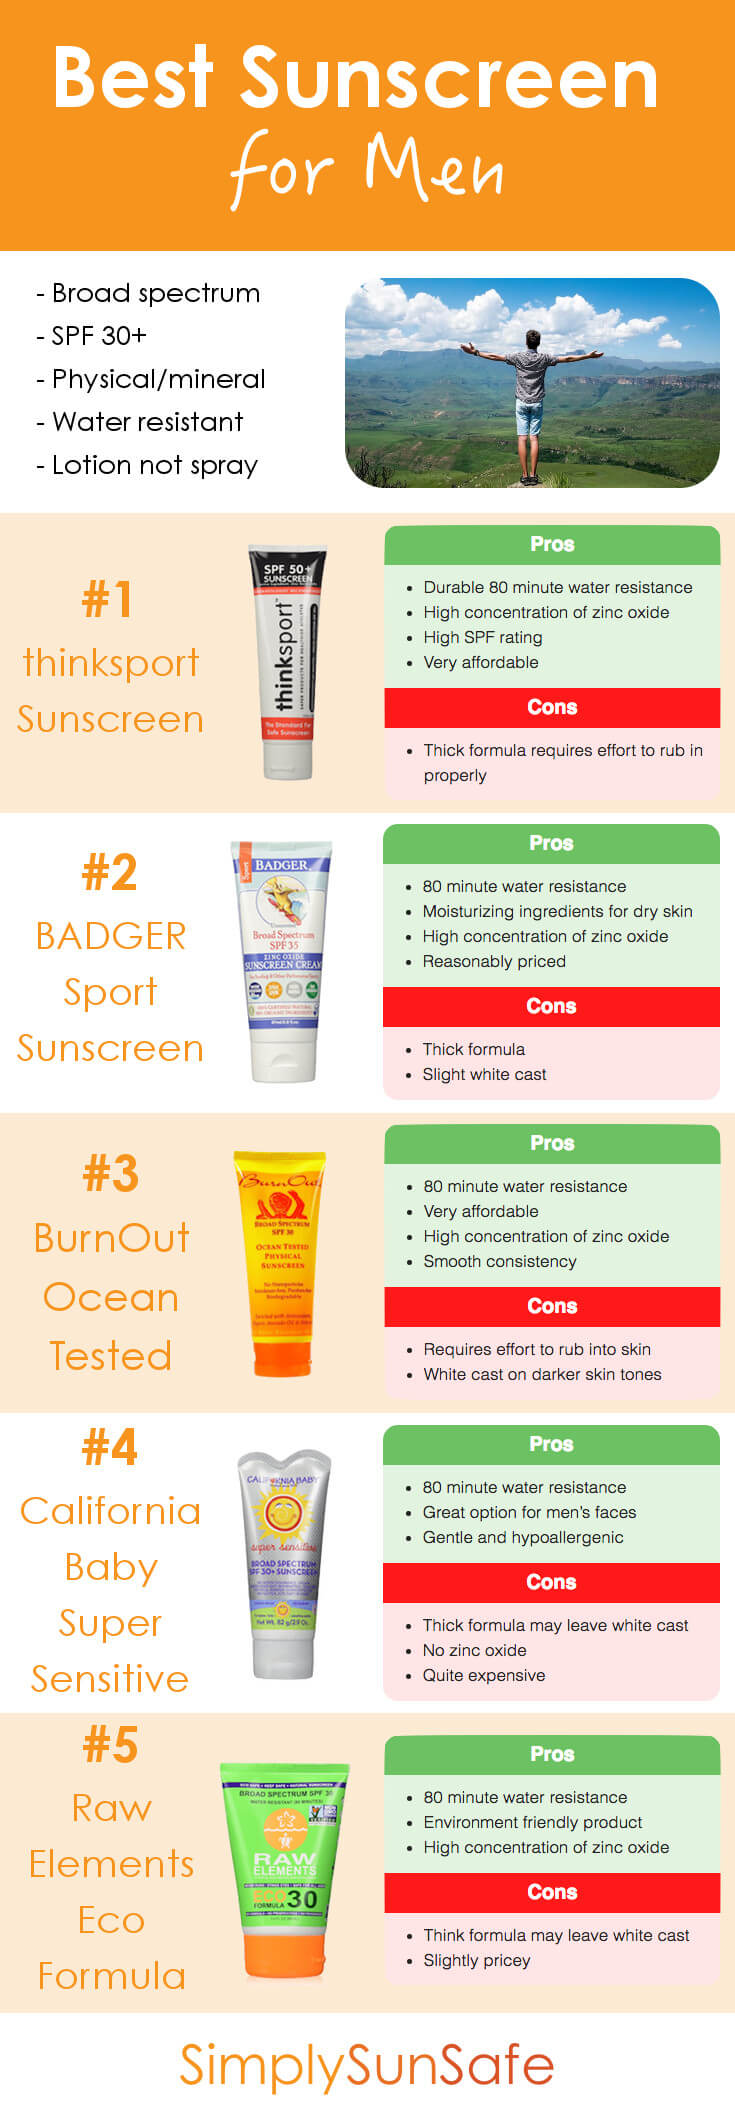 Best Sunscreen for Men Pinterest